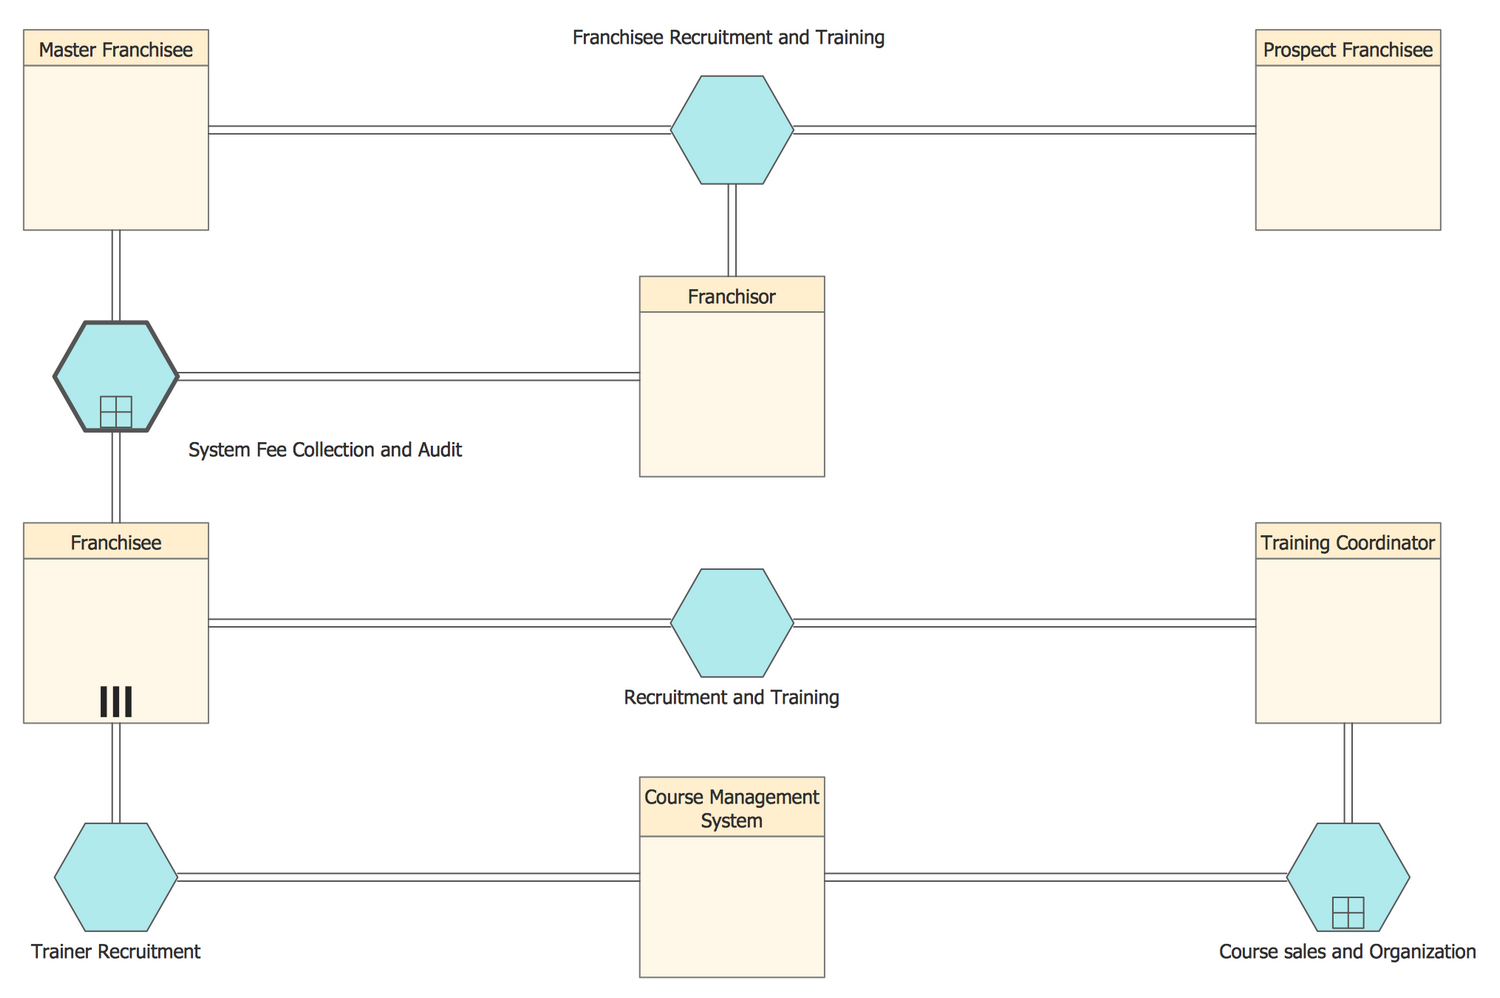 Conversation BPMN 2.0 Diagram - Recruitment and Training